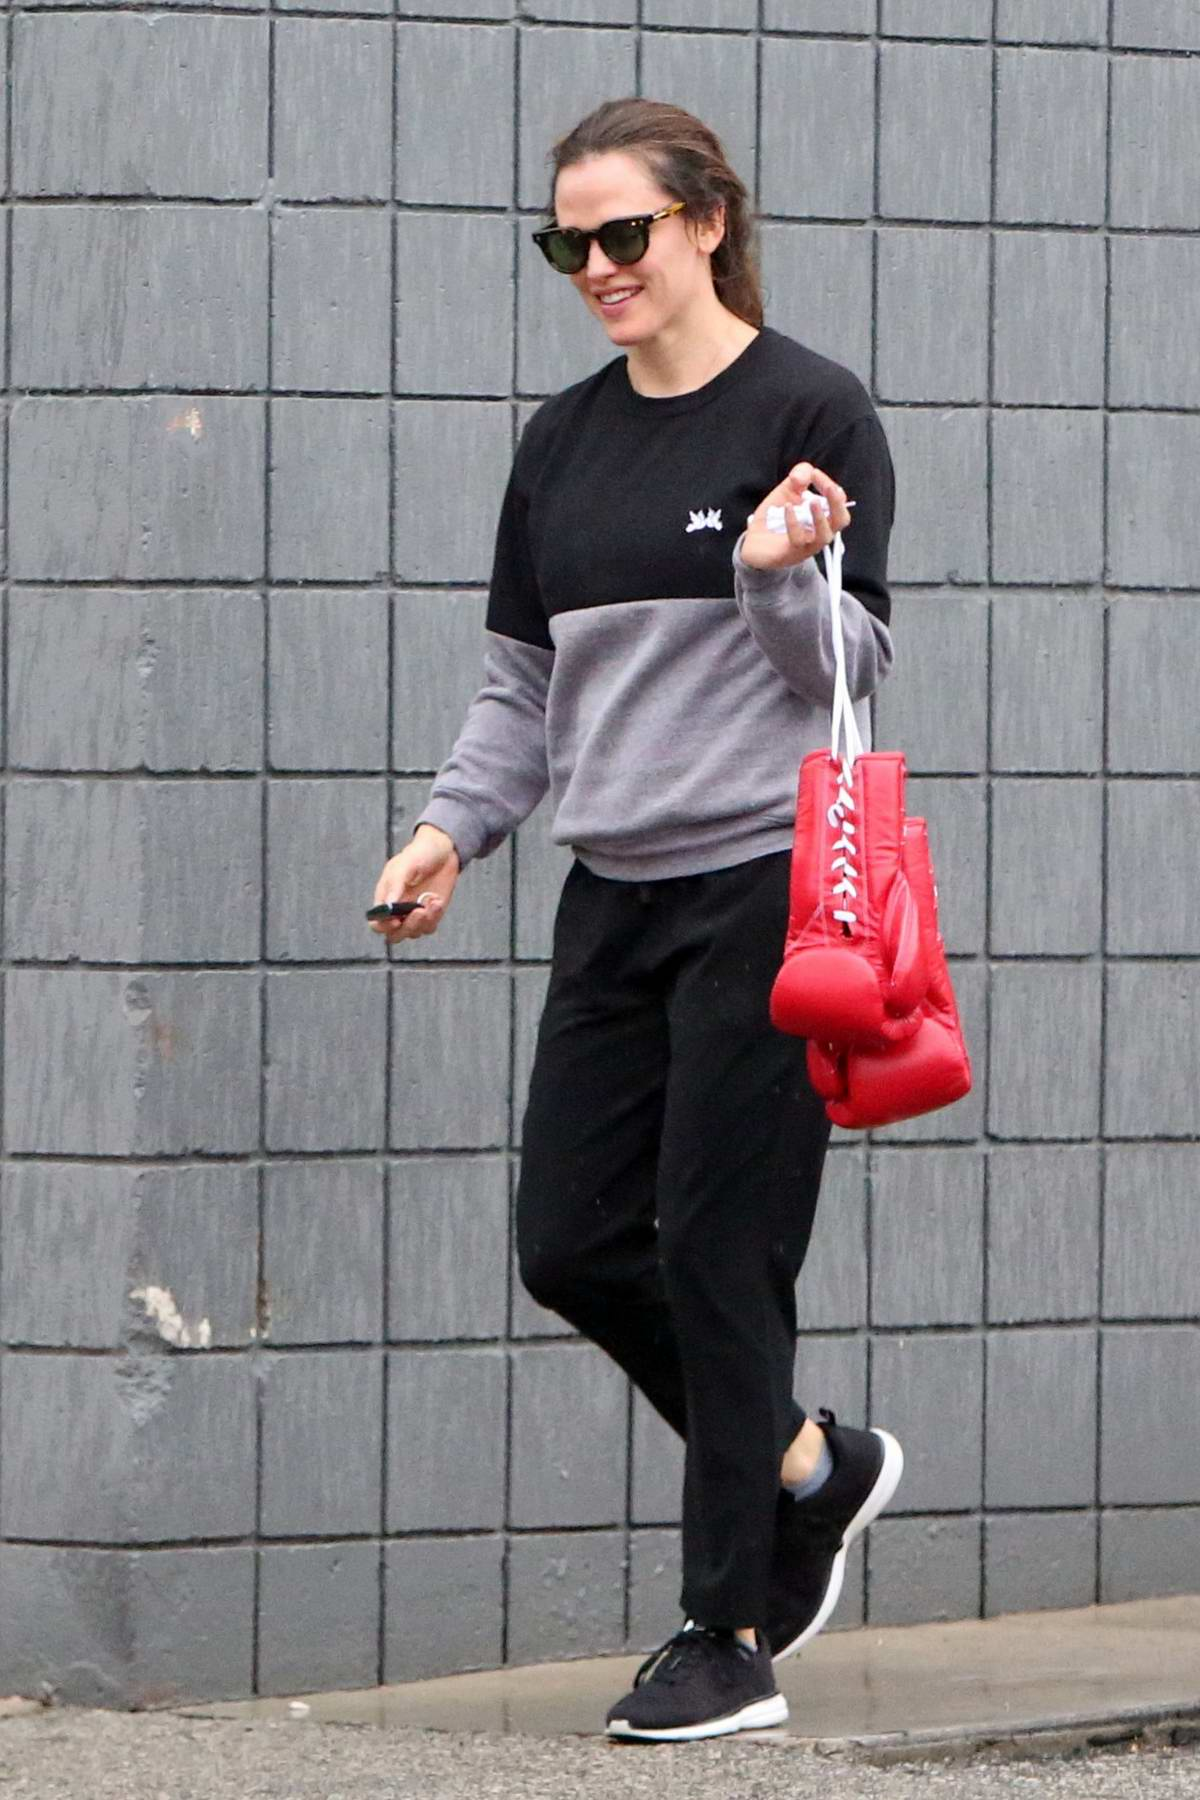 Jennifer Garner seen leaving after her boxing class at the Churchill Boxing Club in Santa Monica, California